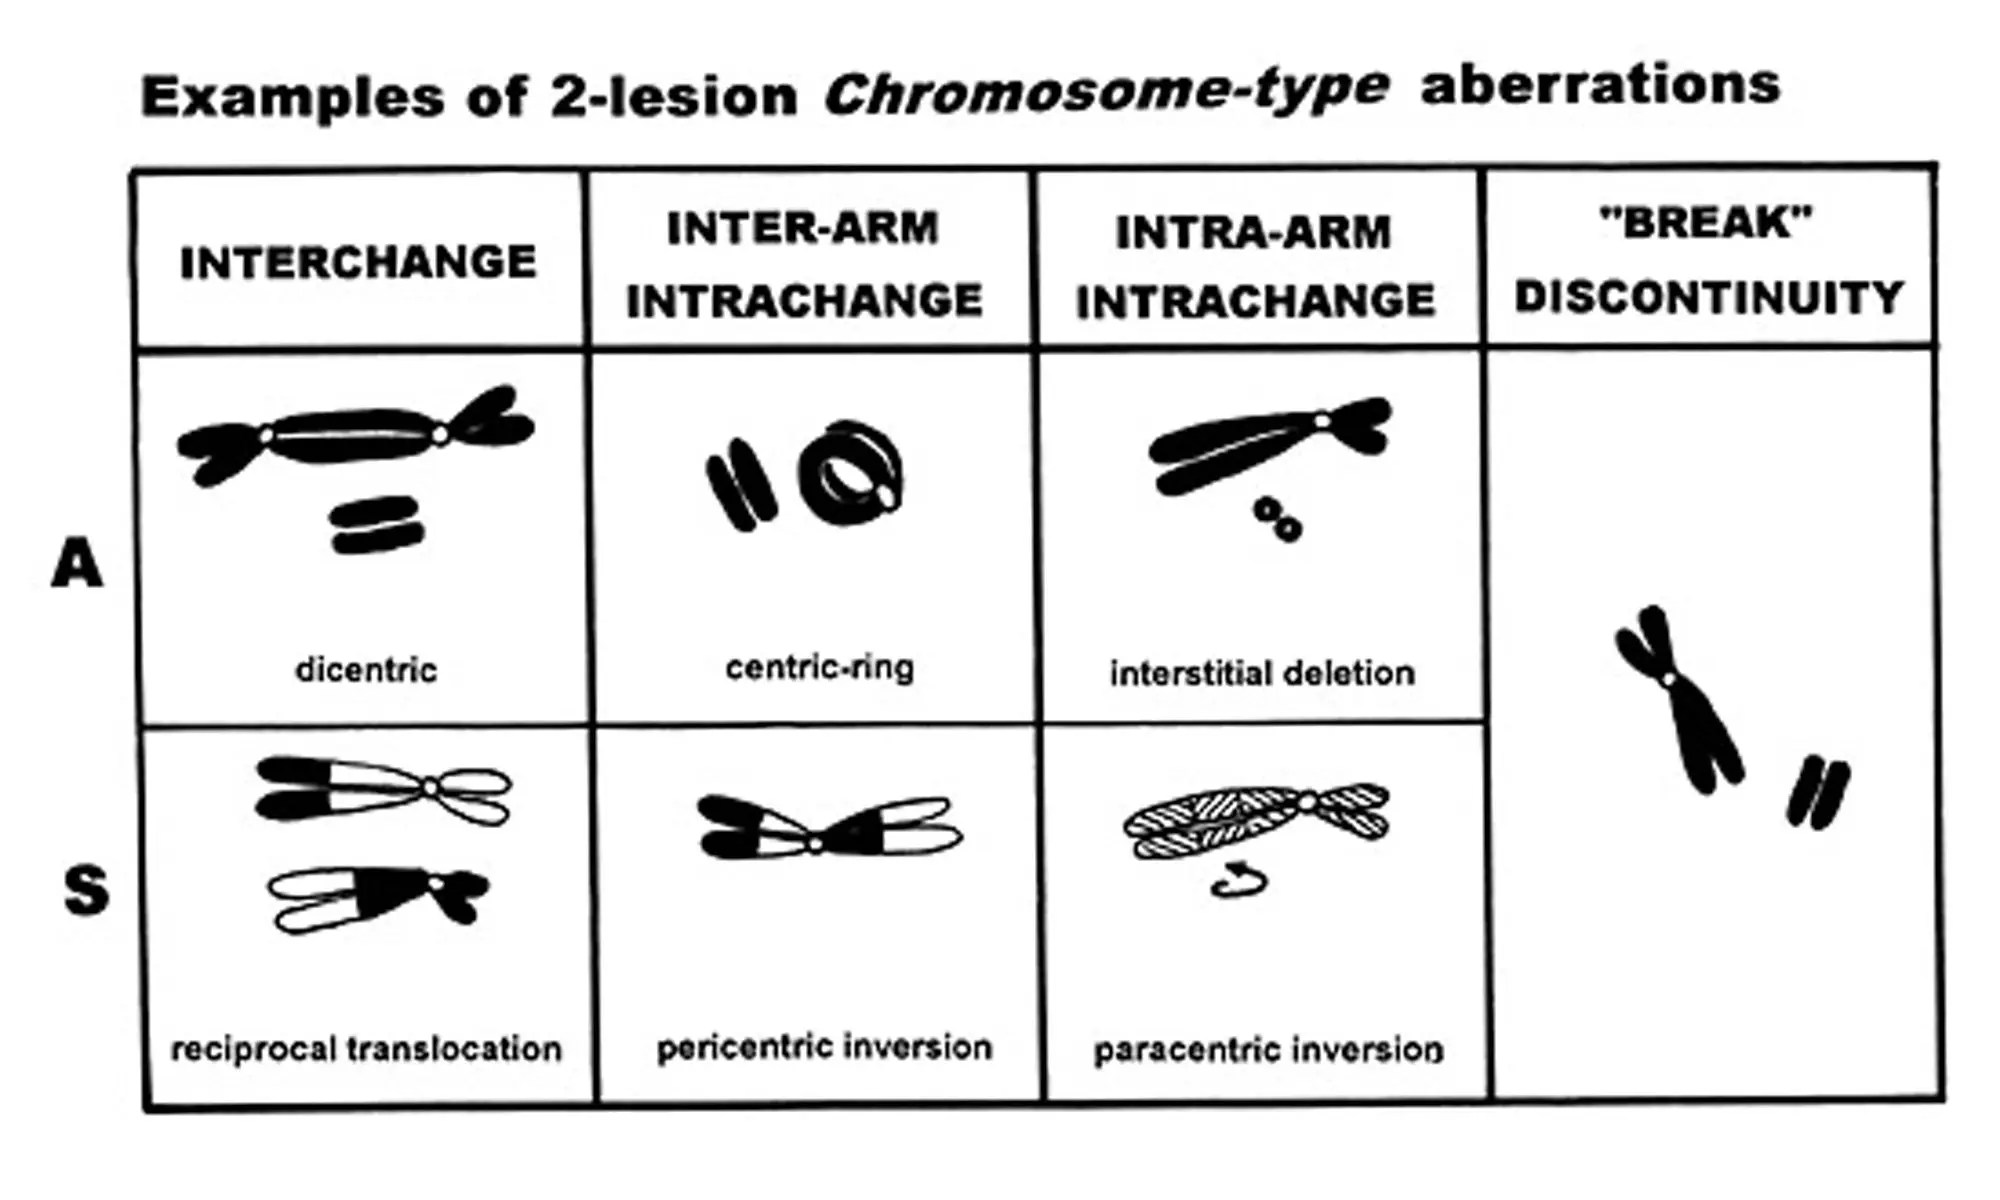 DES induces structural chromosome aberrations